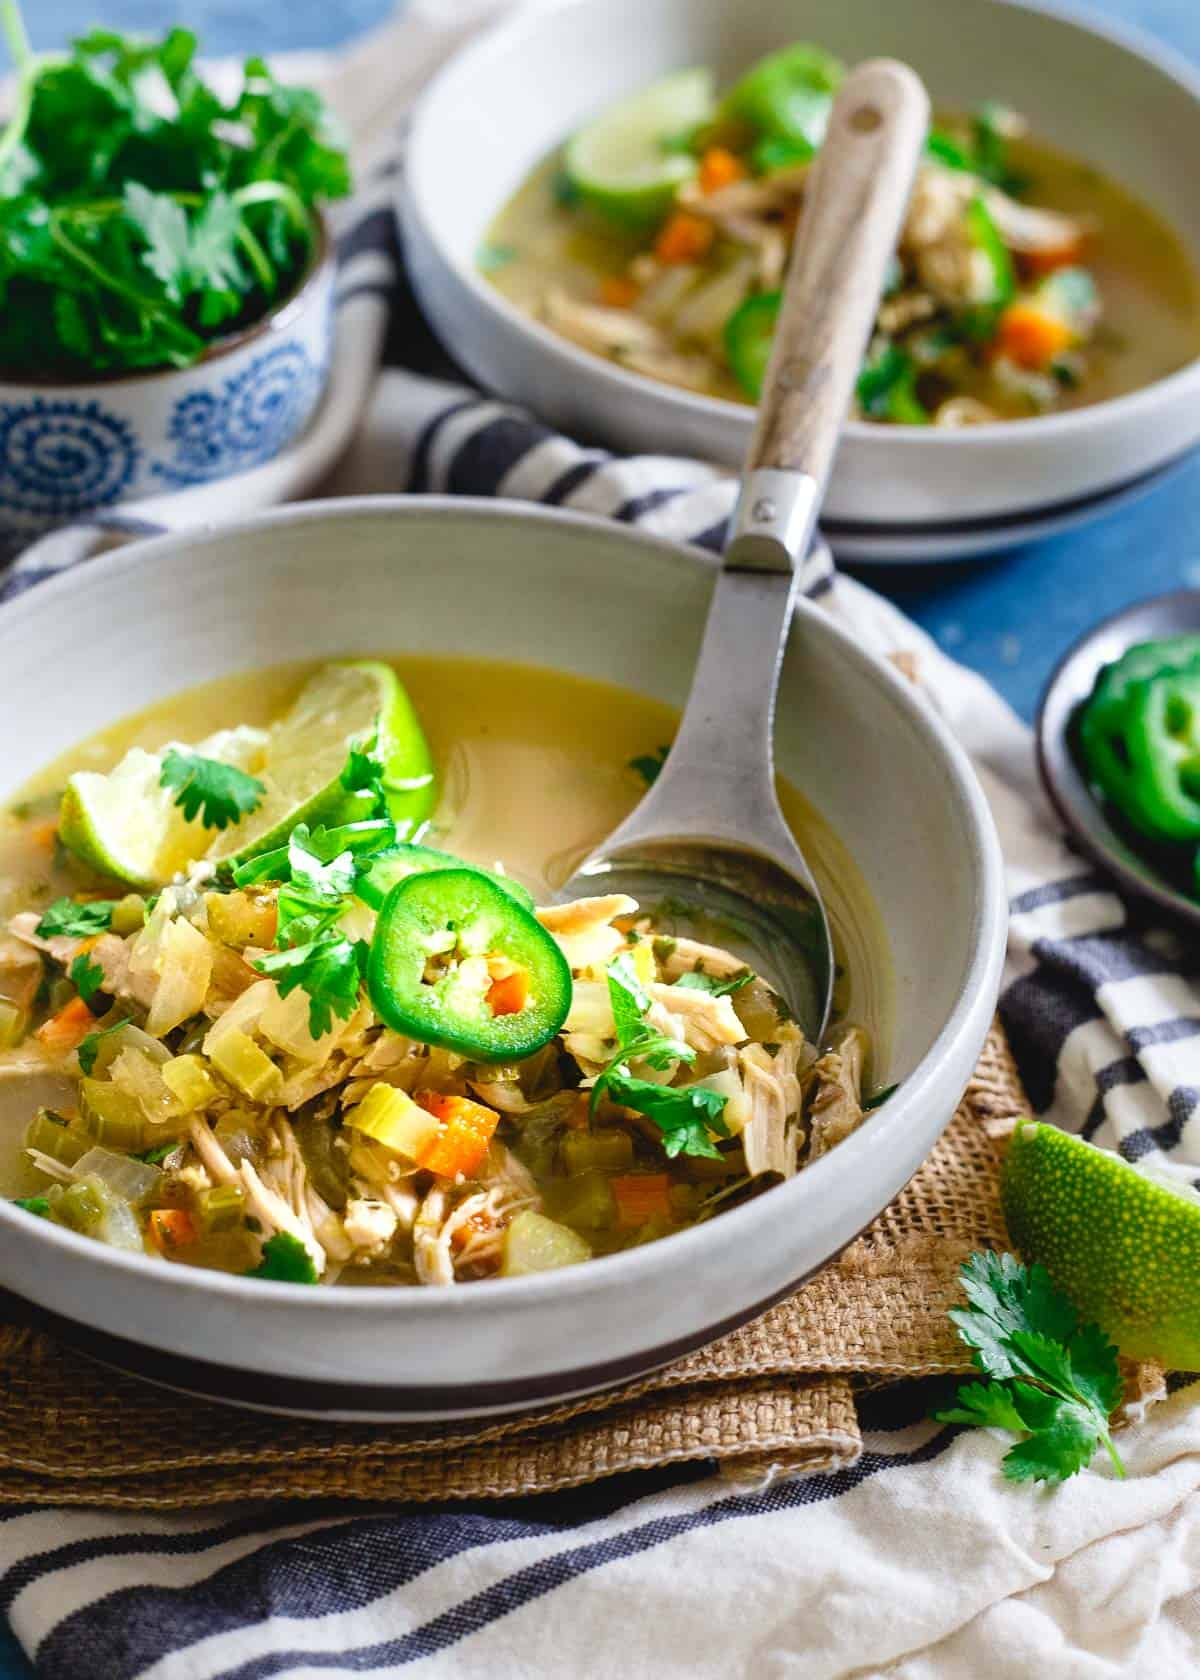 This spicy chicken lime soup is my go-to winter soup and perfect if you're feeling under the weather.